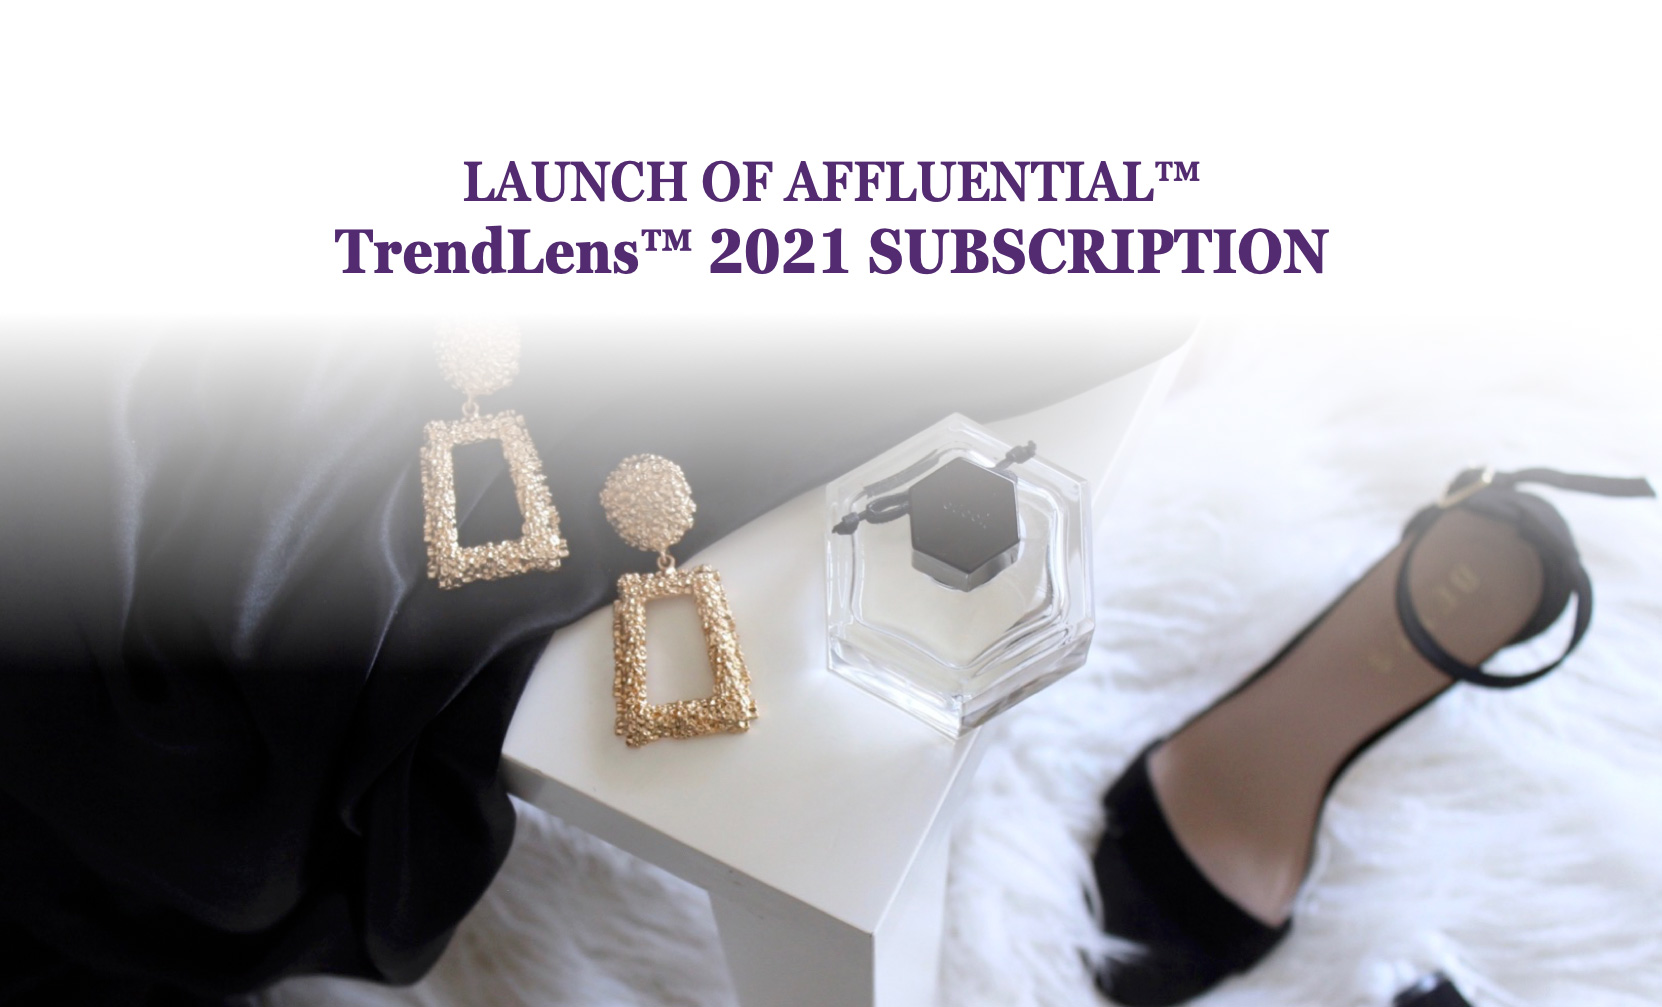 Launch of AFFLUENTIAL™ TrendLens™ 2021 Subscription